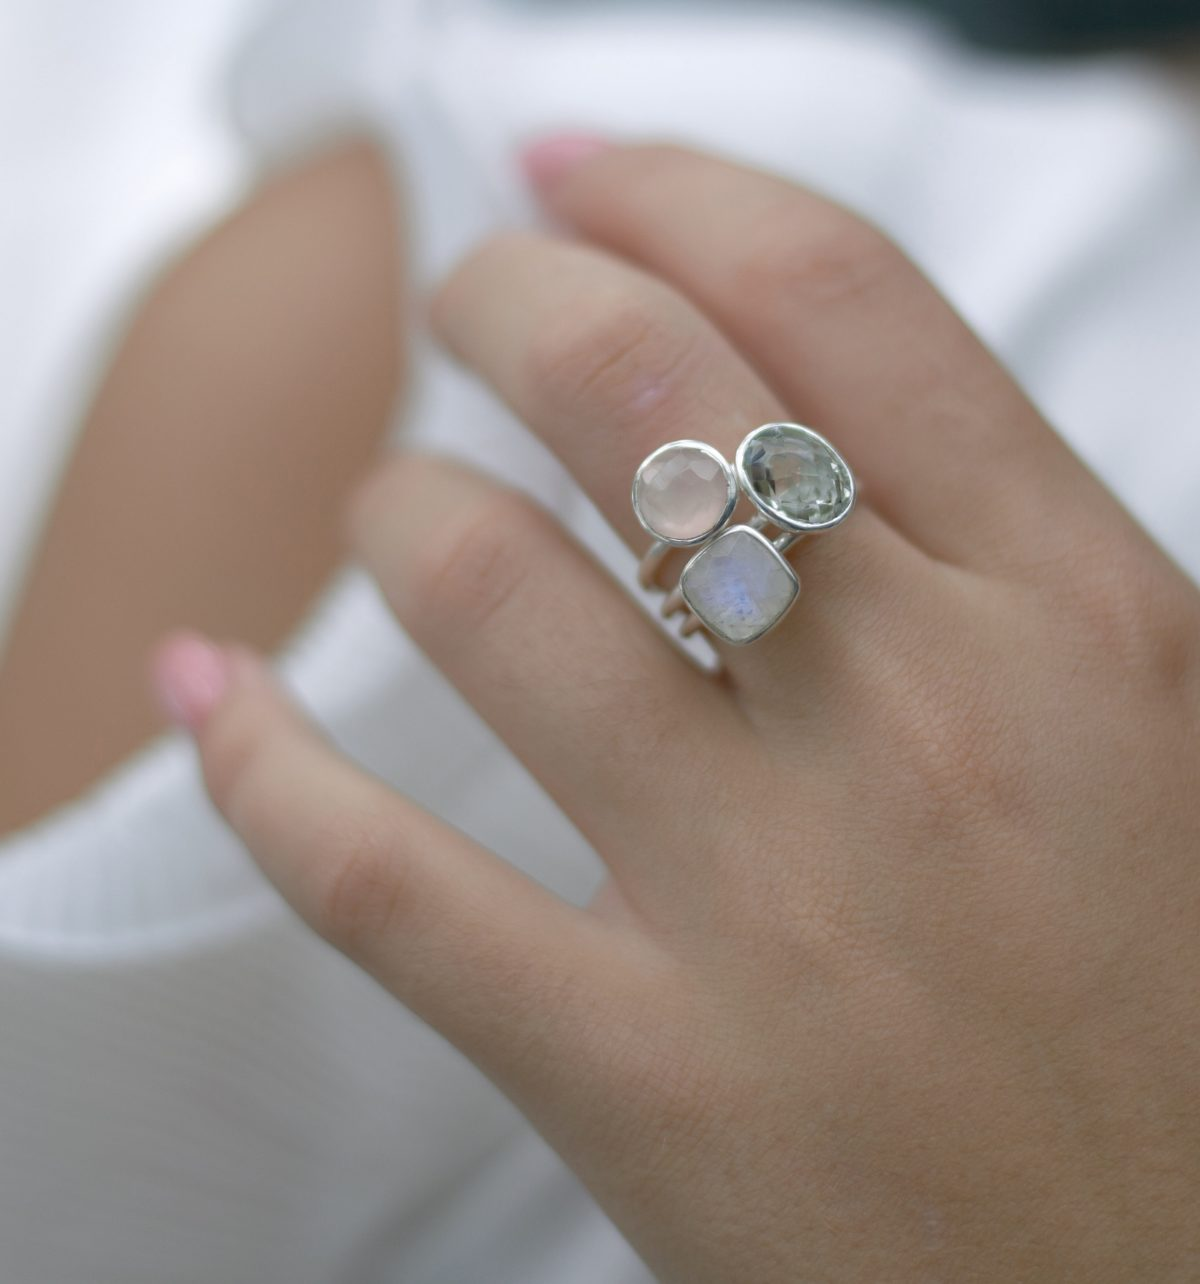 Shakara Jewellery, Bonbon gemstone stacking rings.